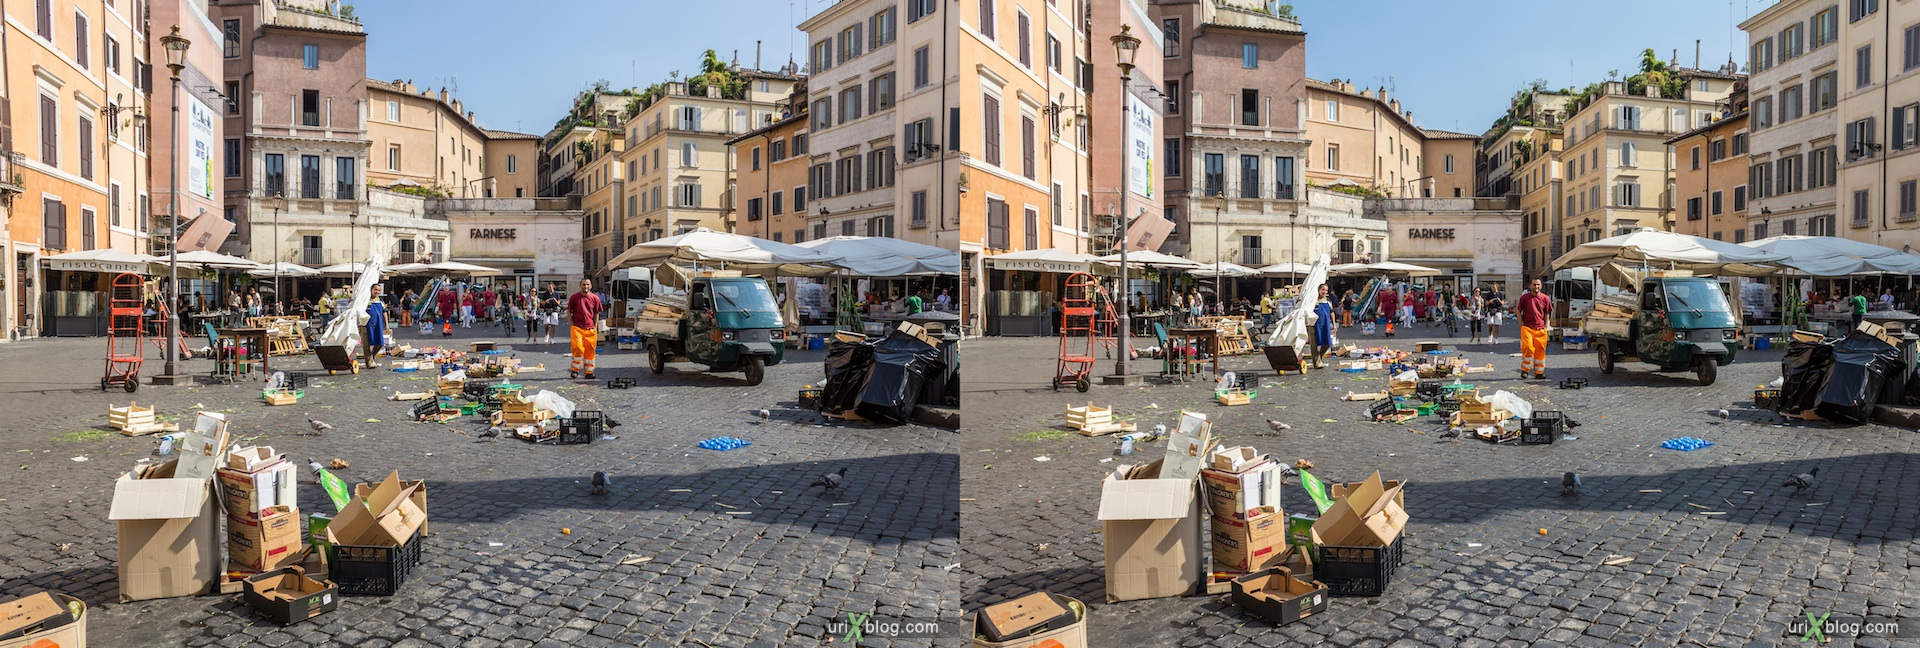 2012, Campo De Fiori square, 3D, stereo pair, cross-eyed, crossview, cross view stereo pair